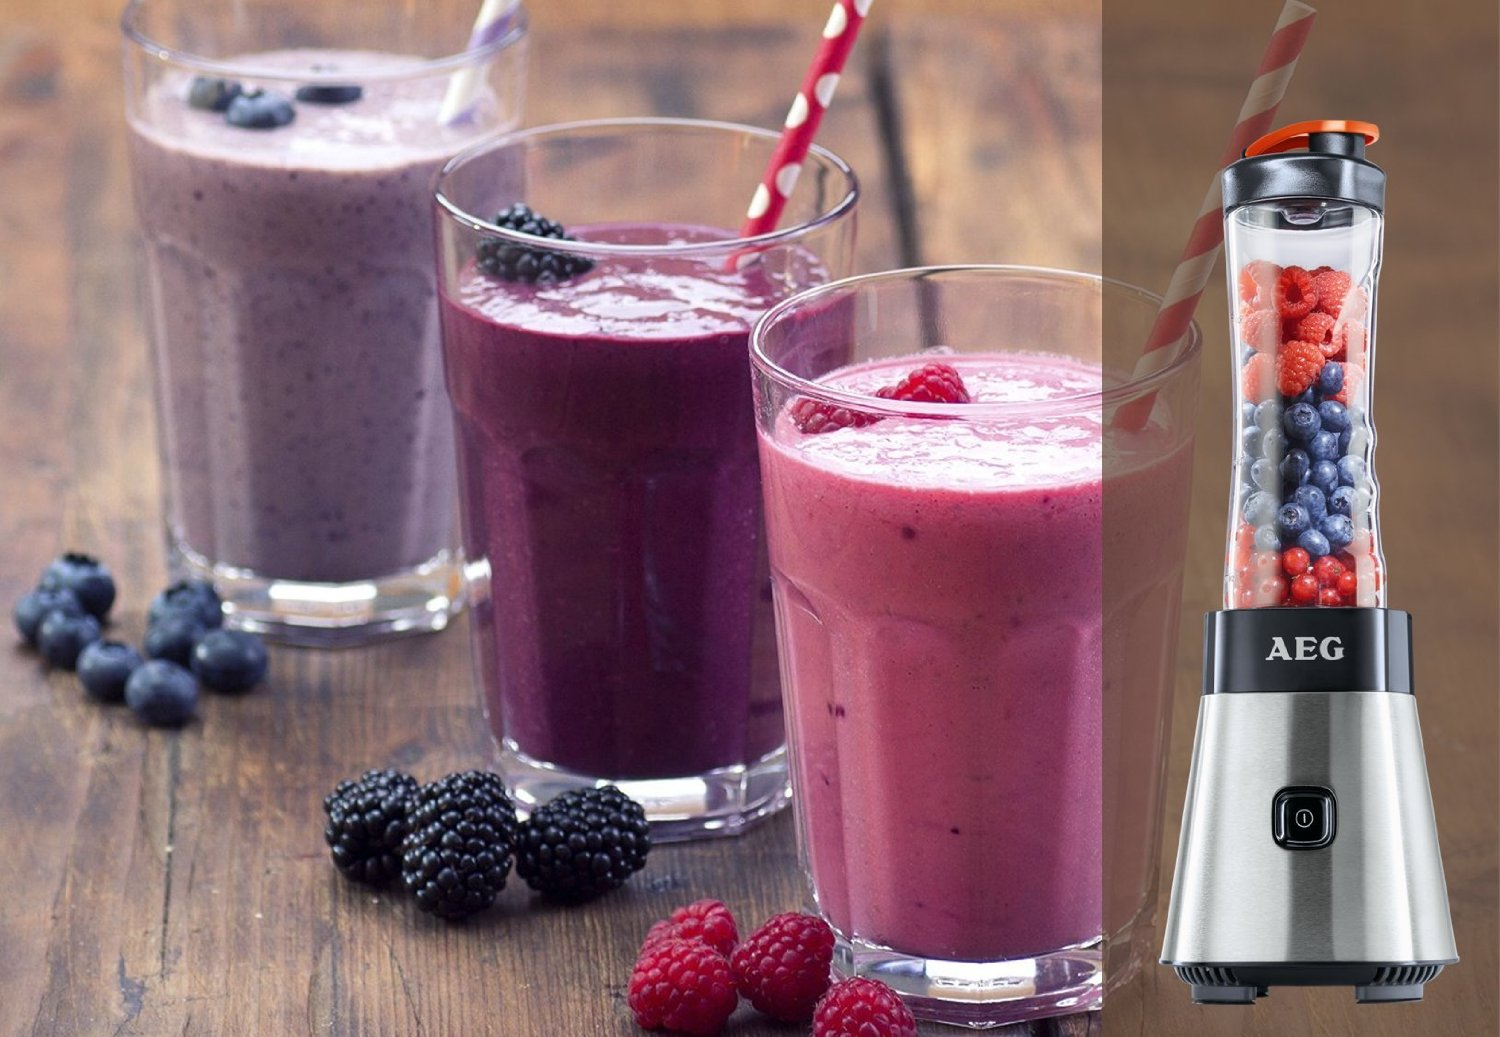 AEG PerfectMix SB 2400 Mini Blender Smoothies